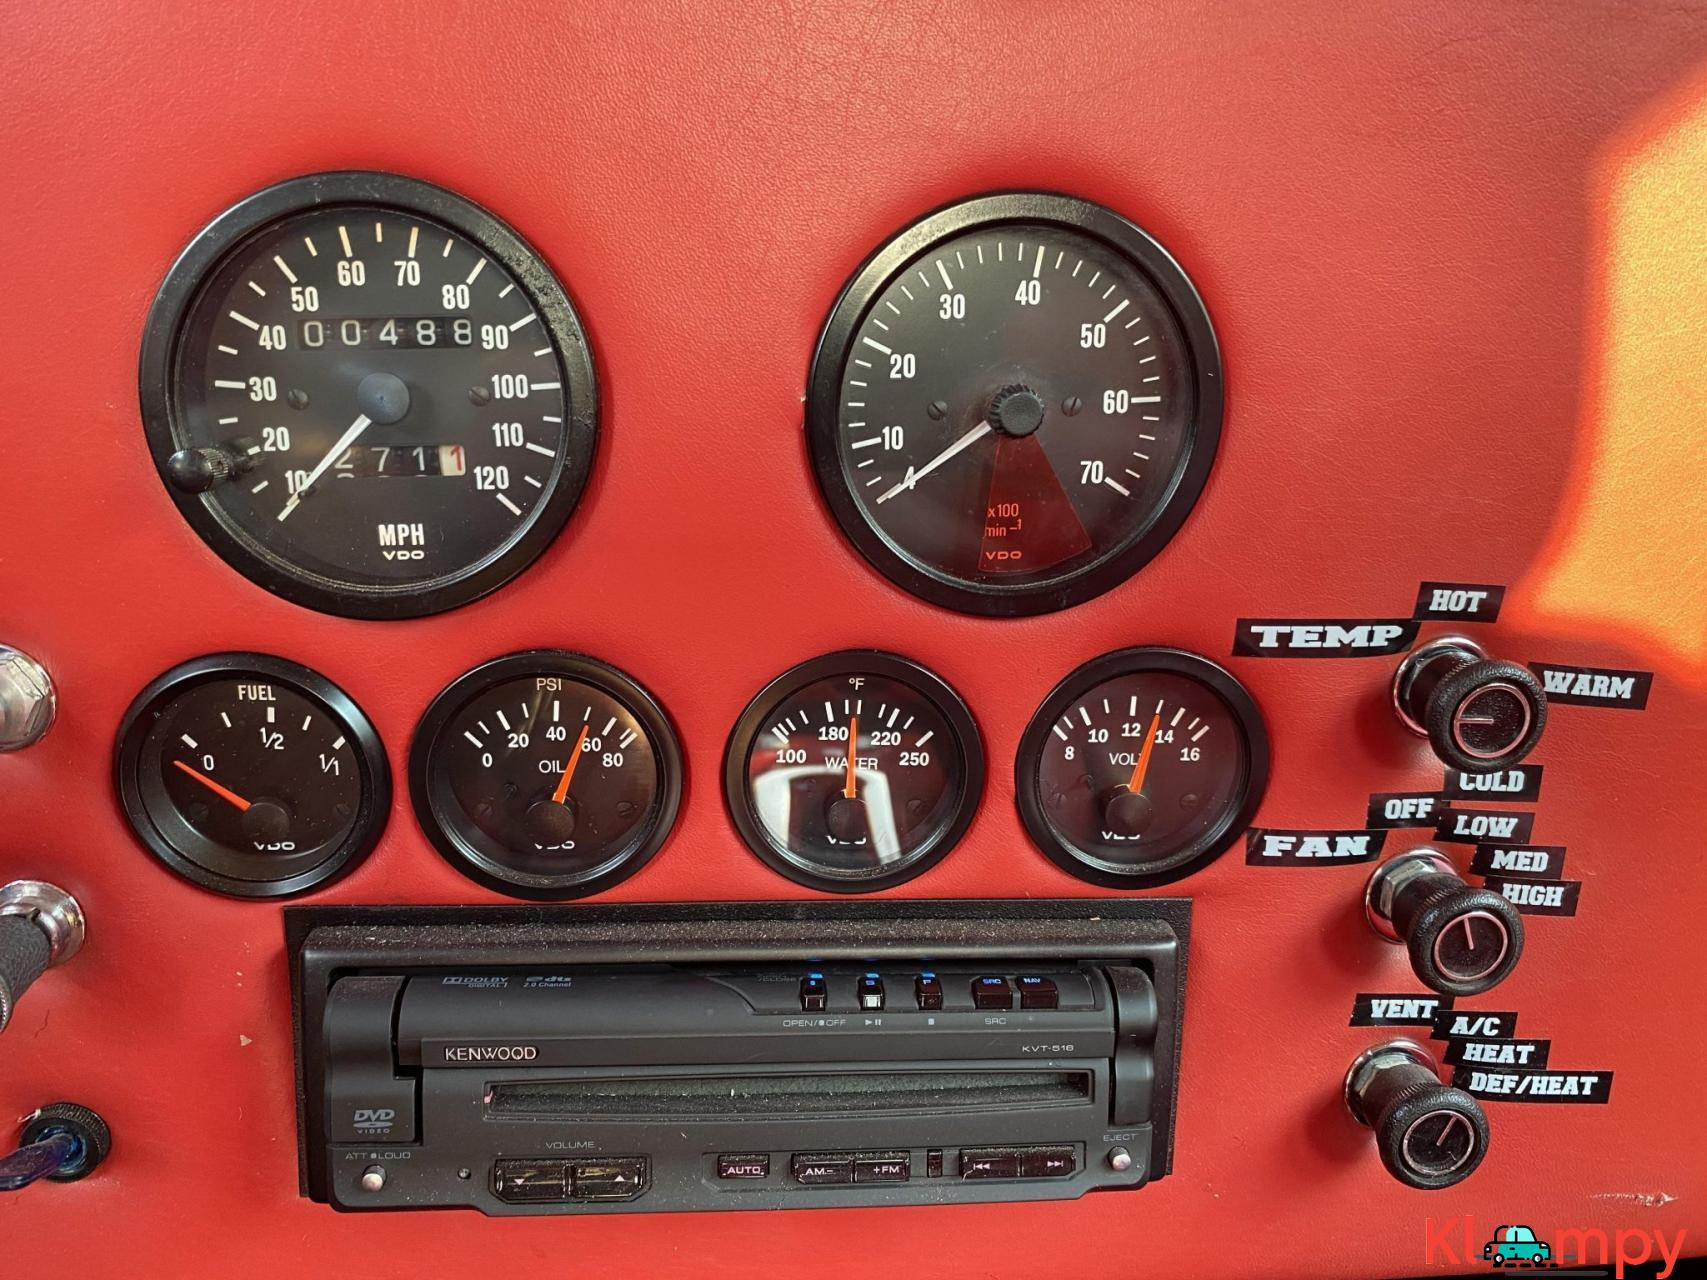 1983 Jeep CJ-7 Supercharged 350 V8 - 12/20